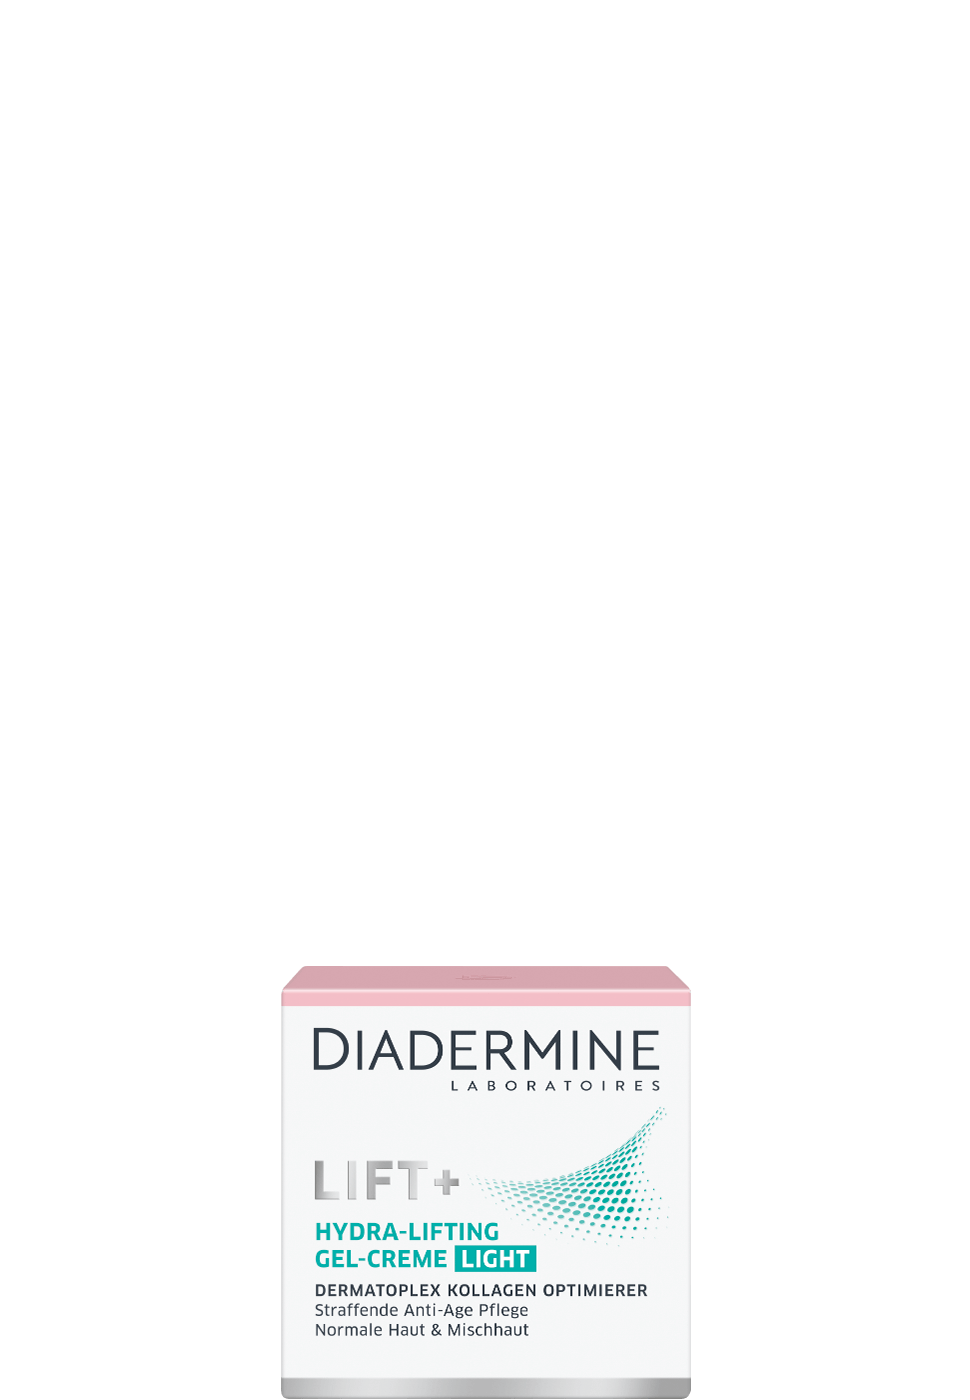 diadermine_de_lift_plus_hydra_lifting_gel_creme_light_970x1400